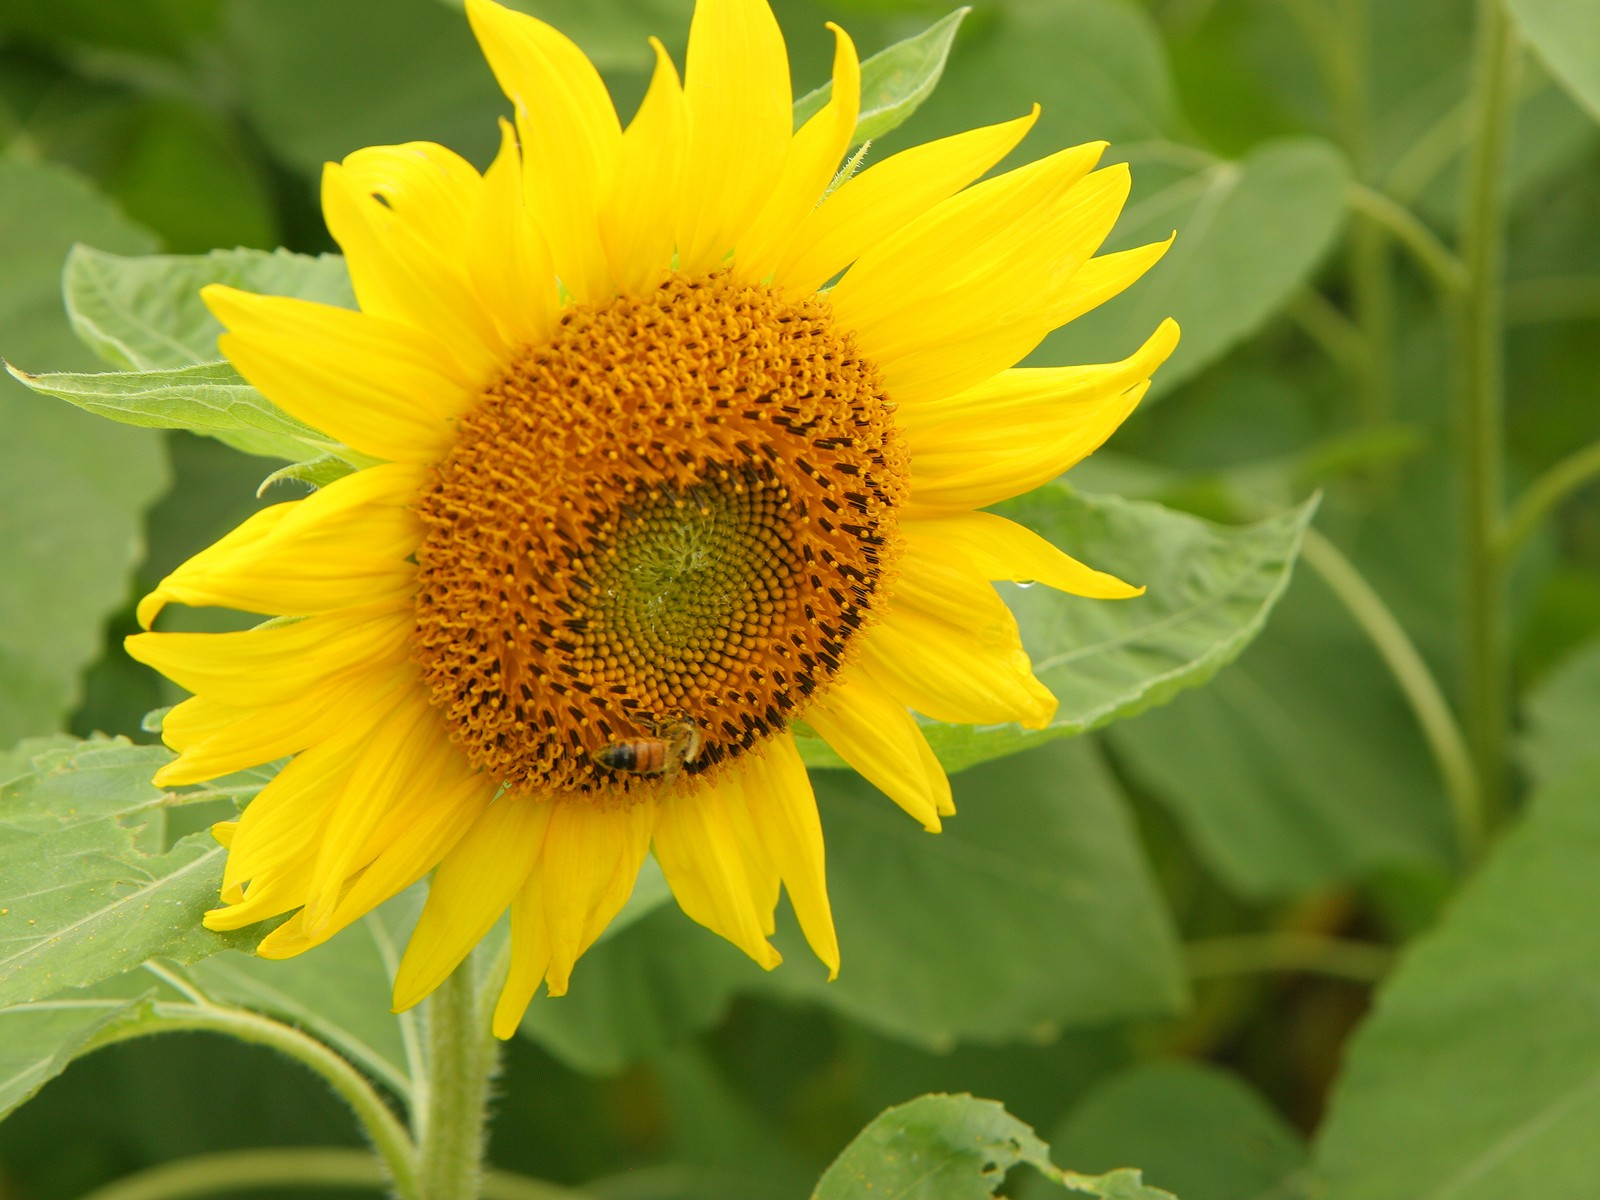 Sunflower Photo 9126